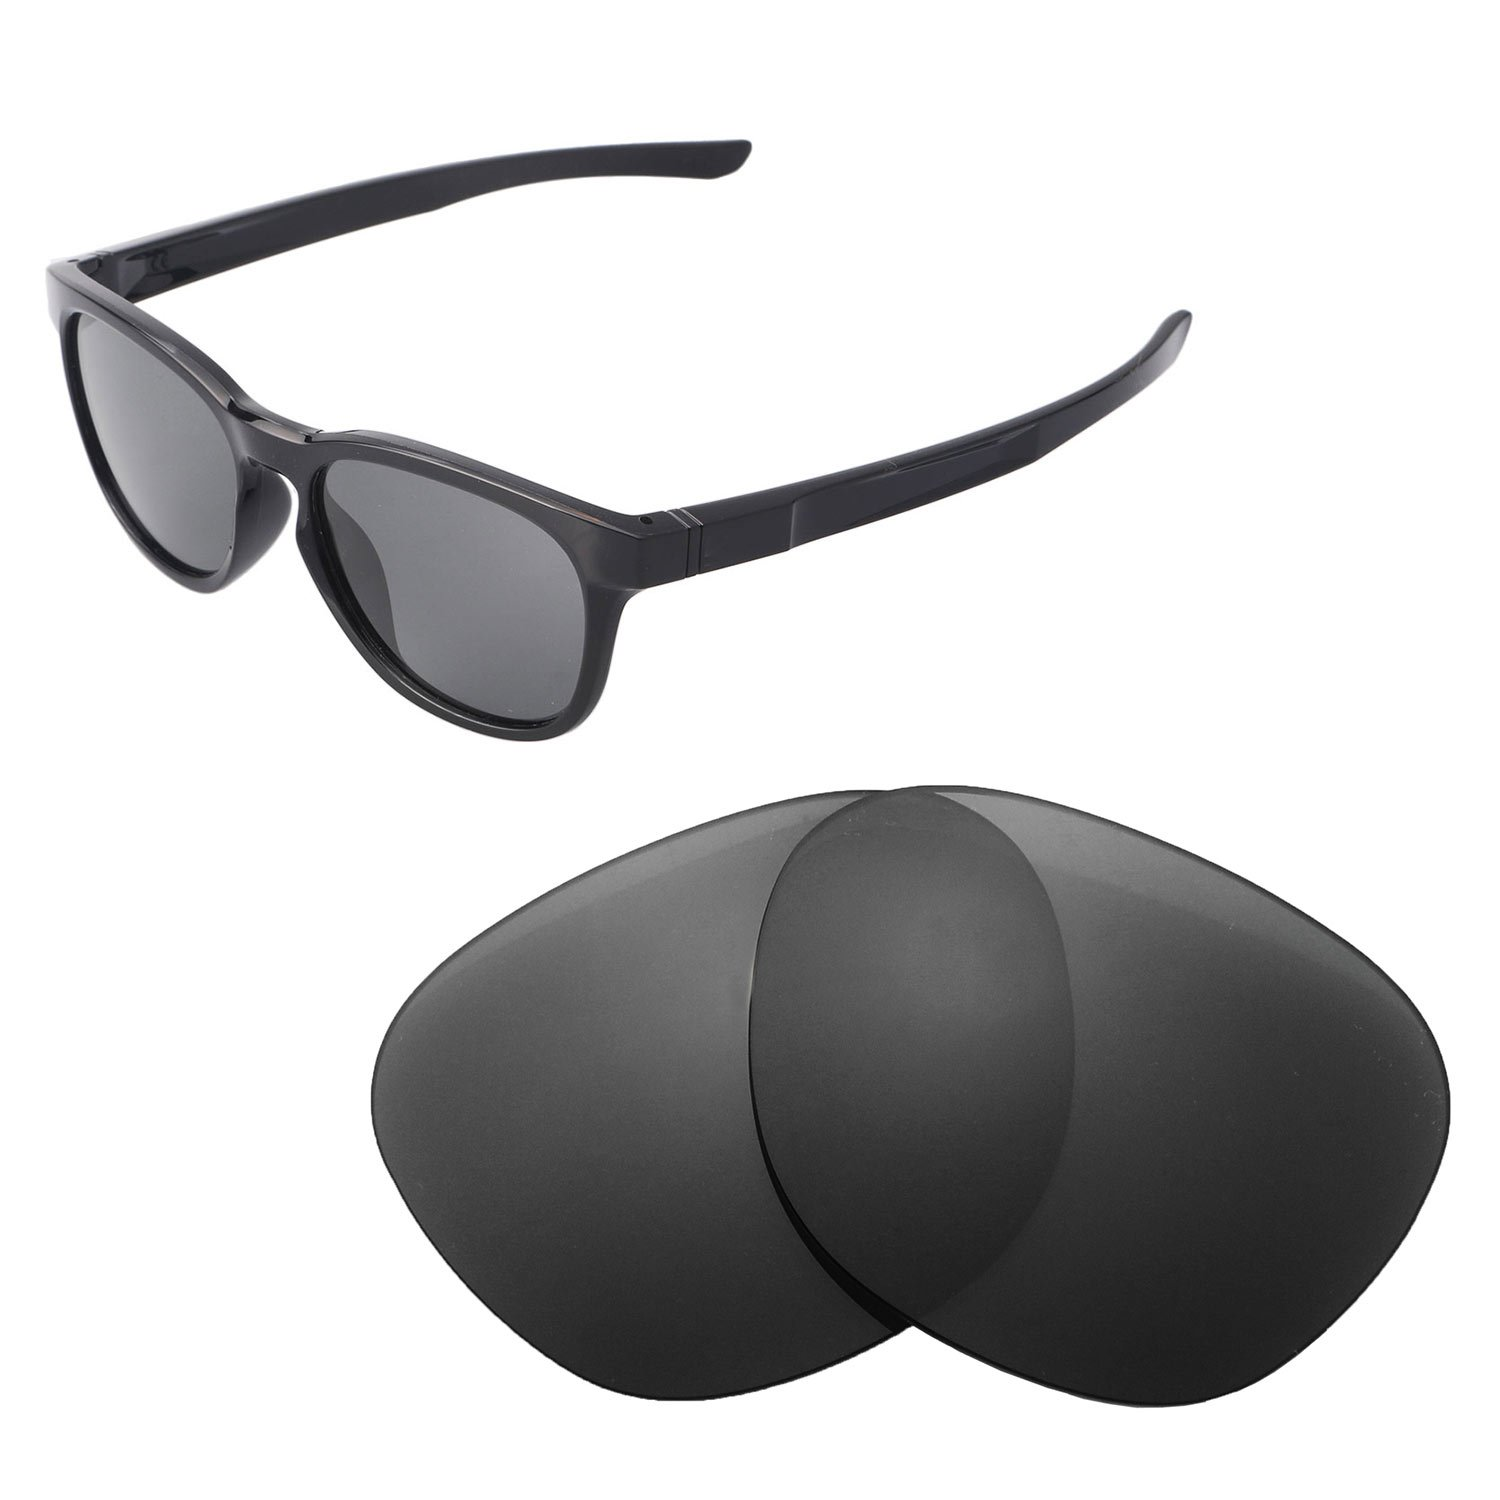 f7a9156f8a Amazon.com  Walleva Replacement Lenses for Oakley Stringer Sunglasses - Multiple  Options Available (Black - Polarized)  Clothing